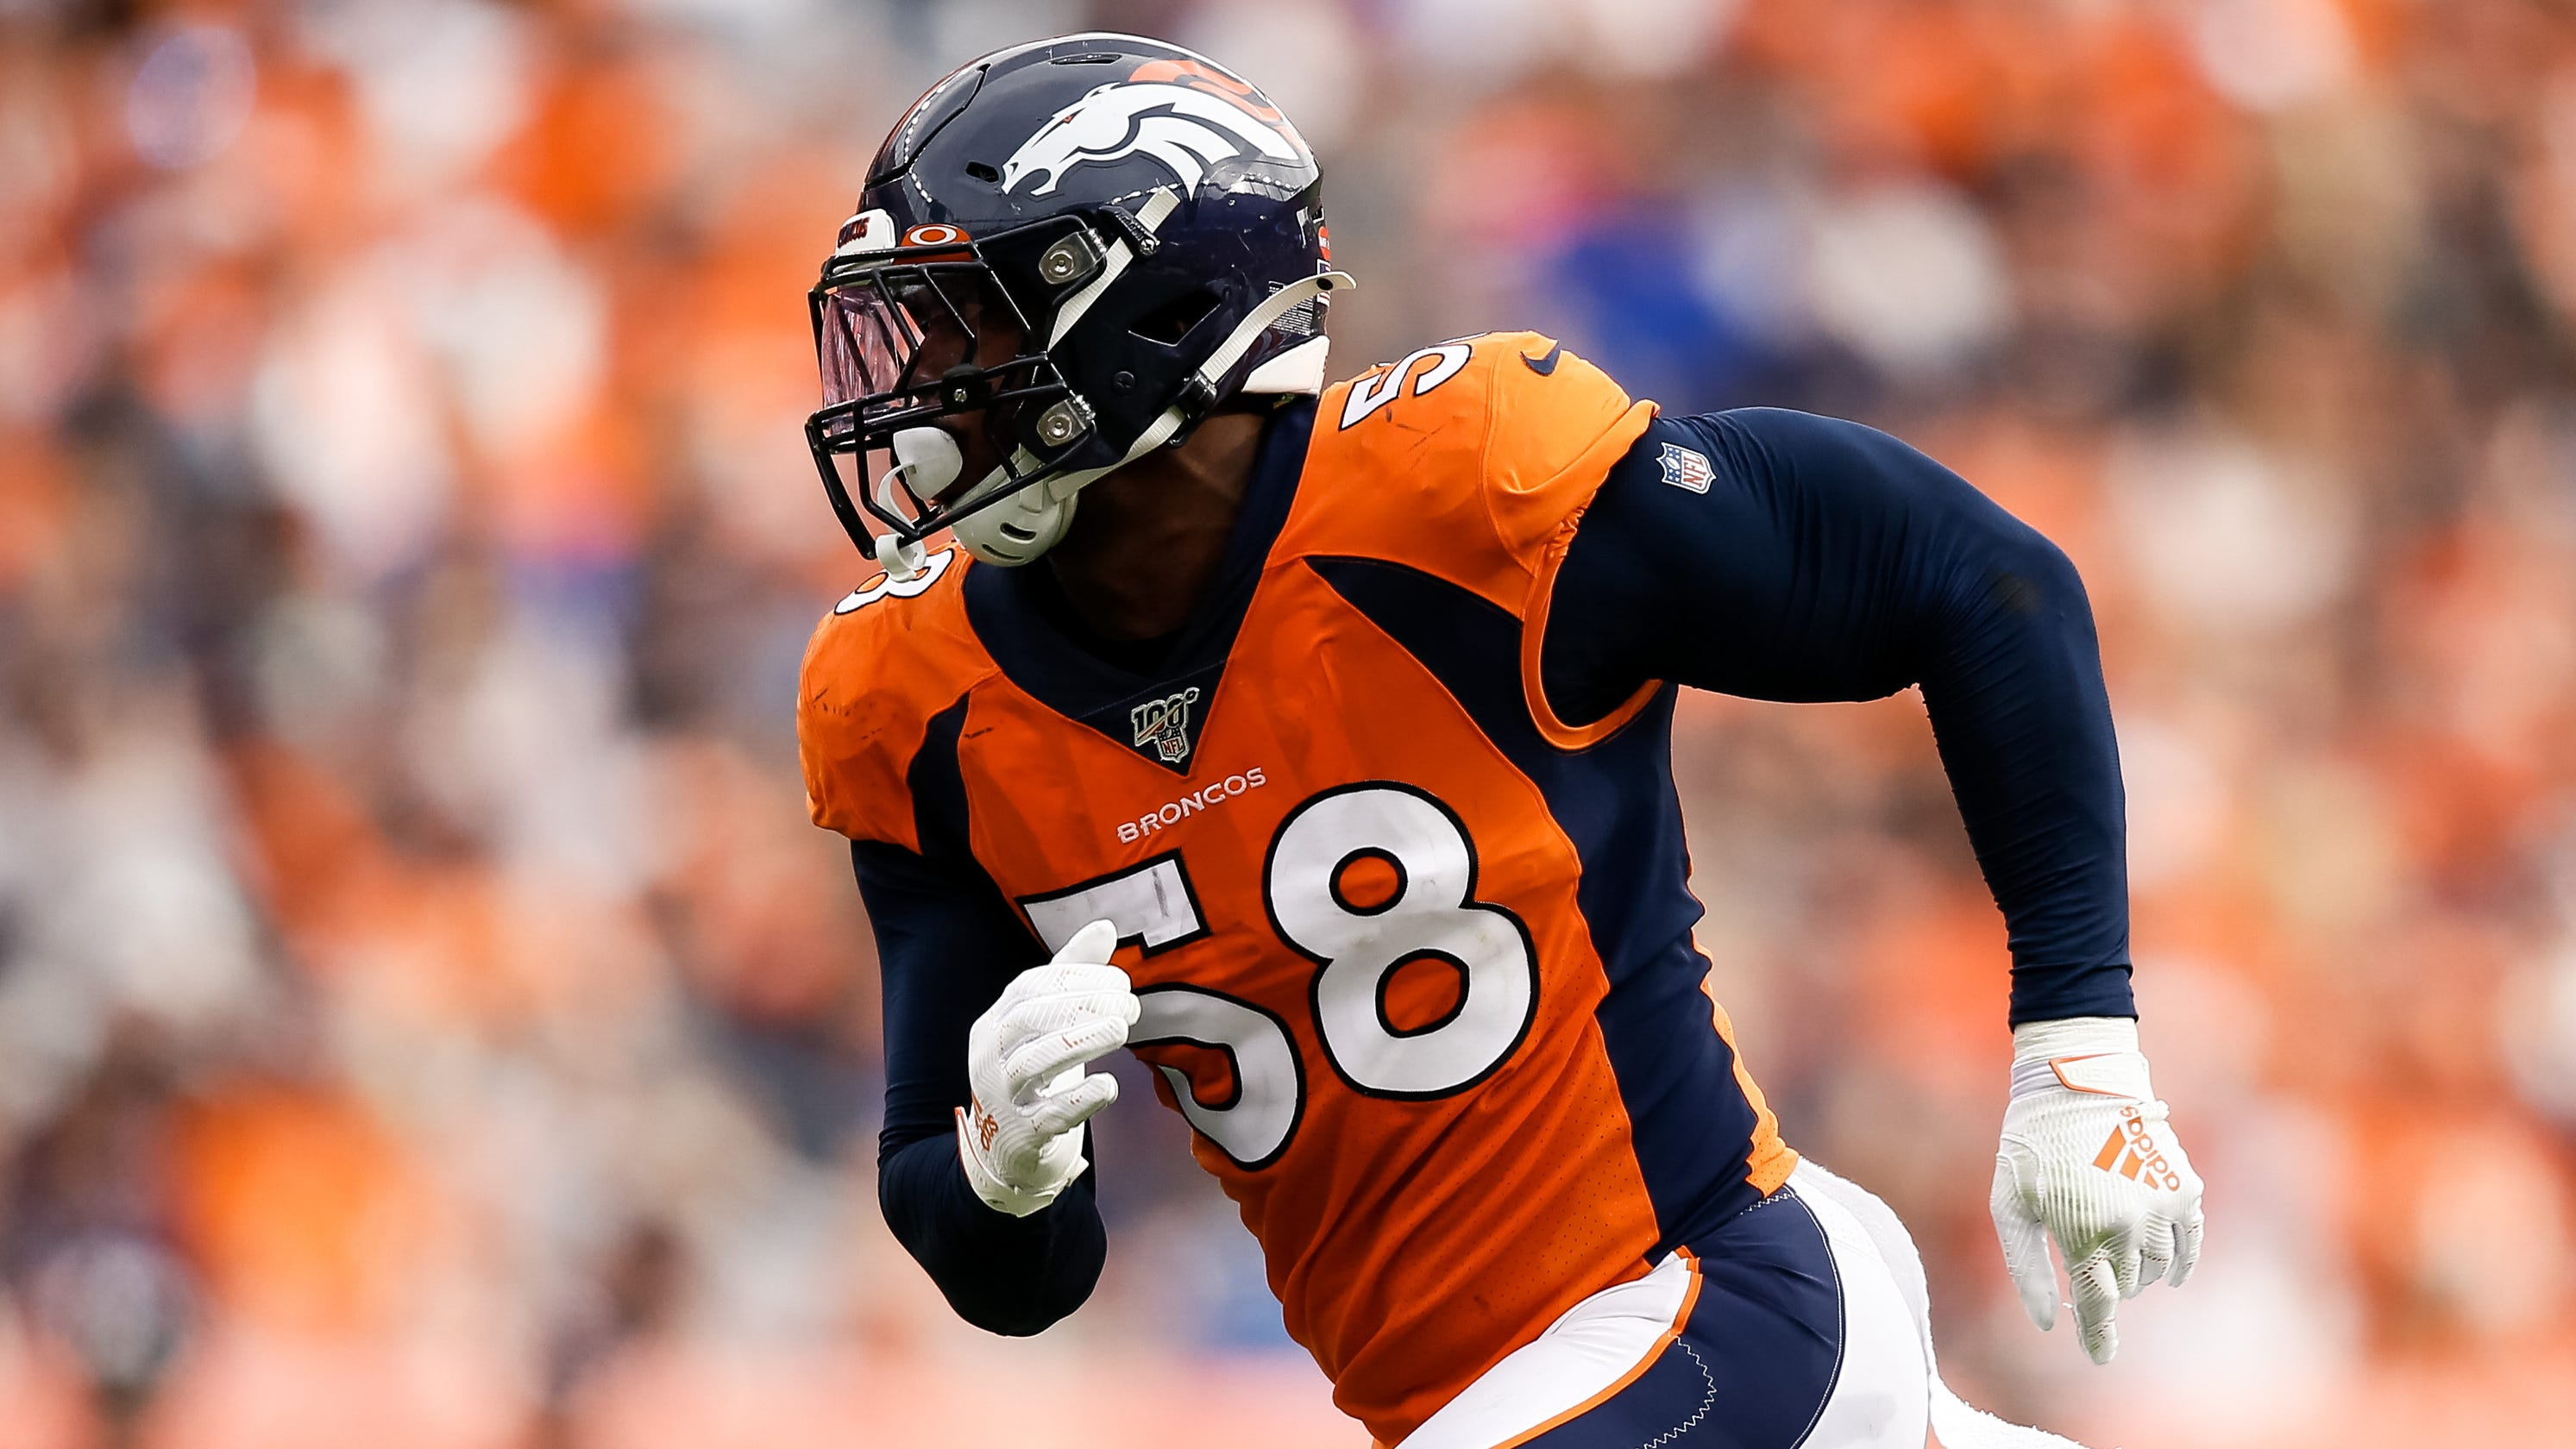 Denver Broncos' Von Miller suffers lower leg injury that could sideline him extensively, per reports